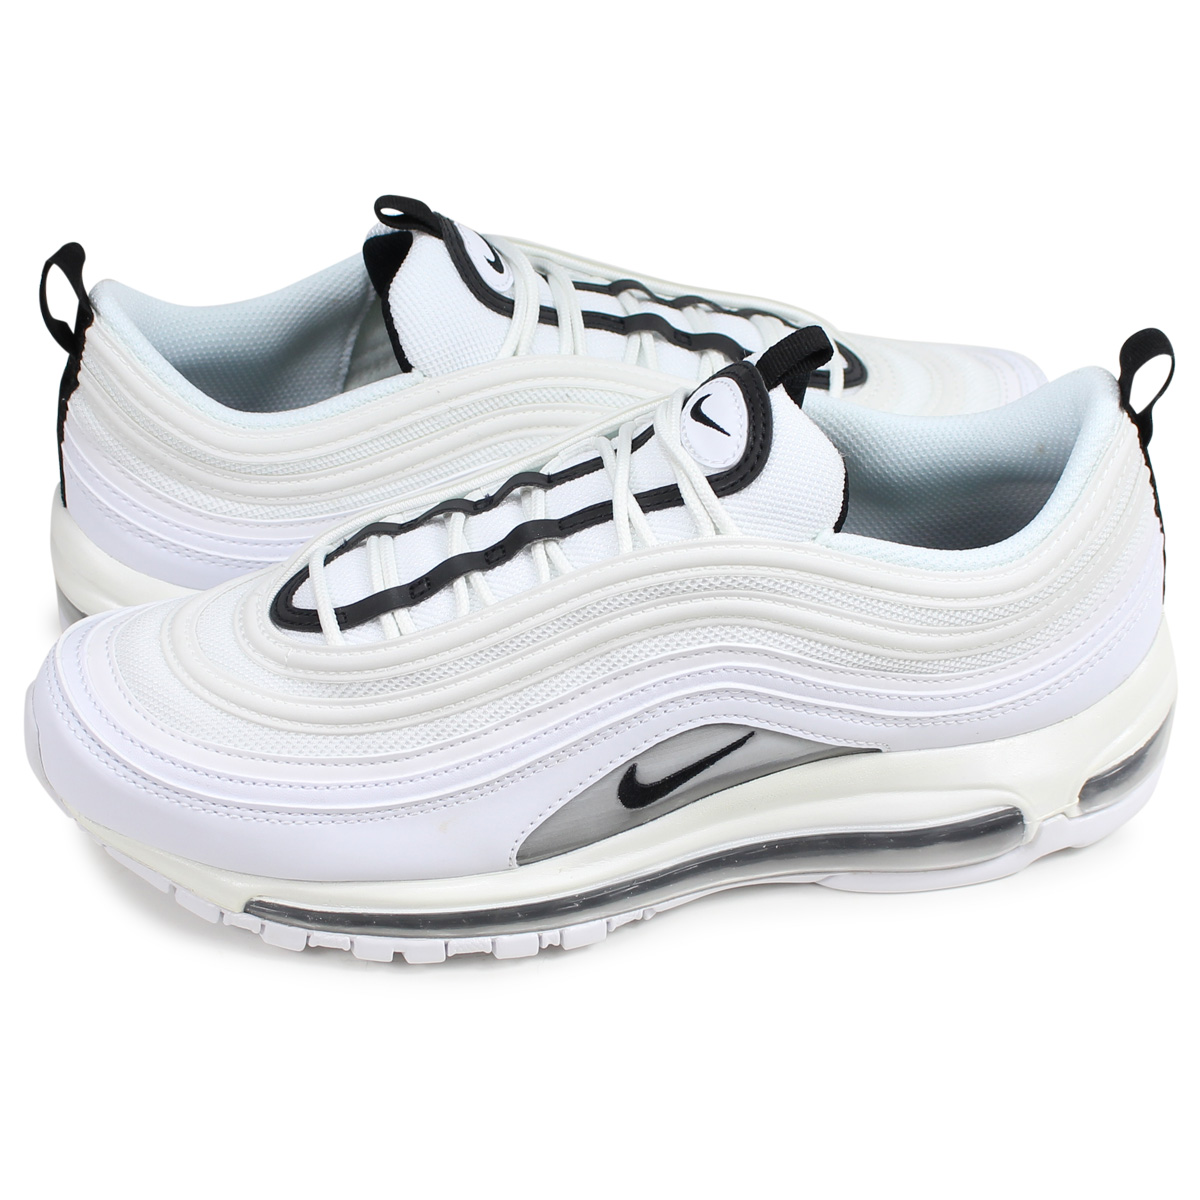 low cost 8bfde 3e66e Nike NIKE Air Max 97 sneakers Lady's men WMNS AIR MAX 97 white white  921,733-103